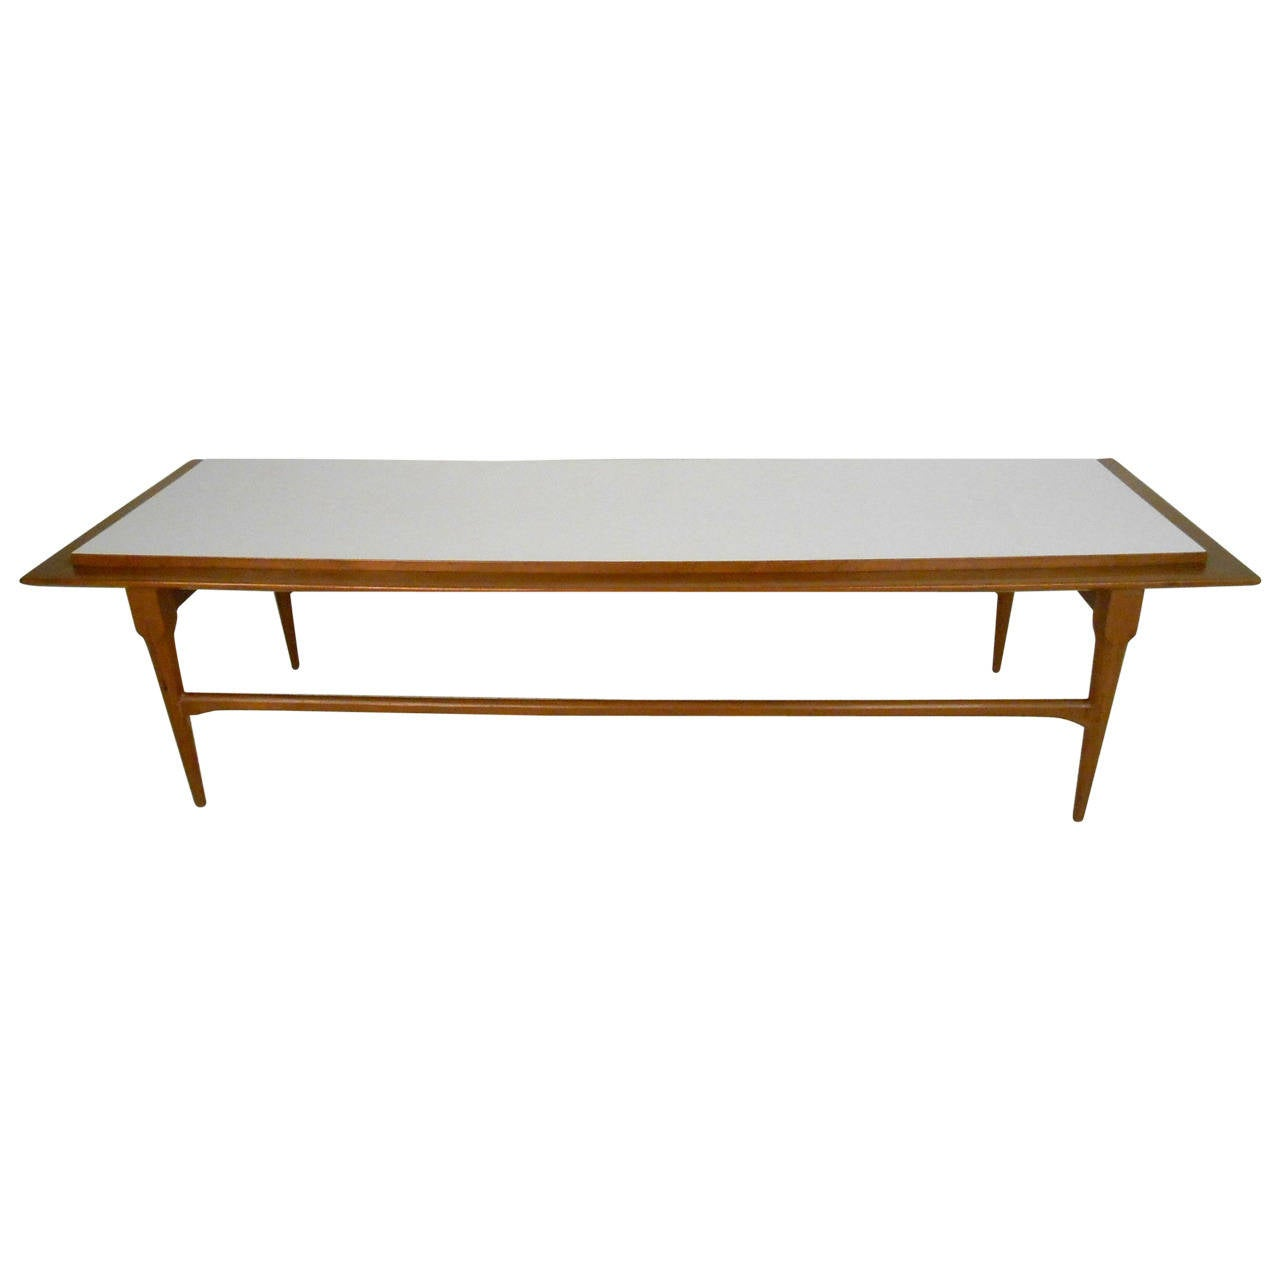 Mid century modern long coffee table for sale at 1stdibs for Modern coffee table for sale